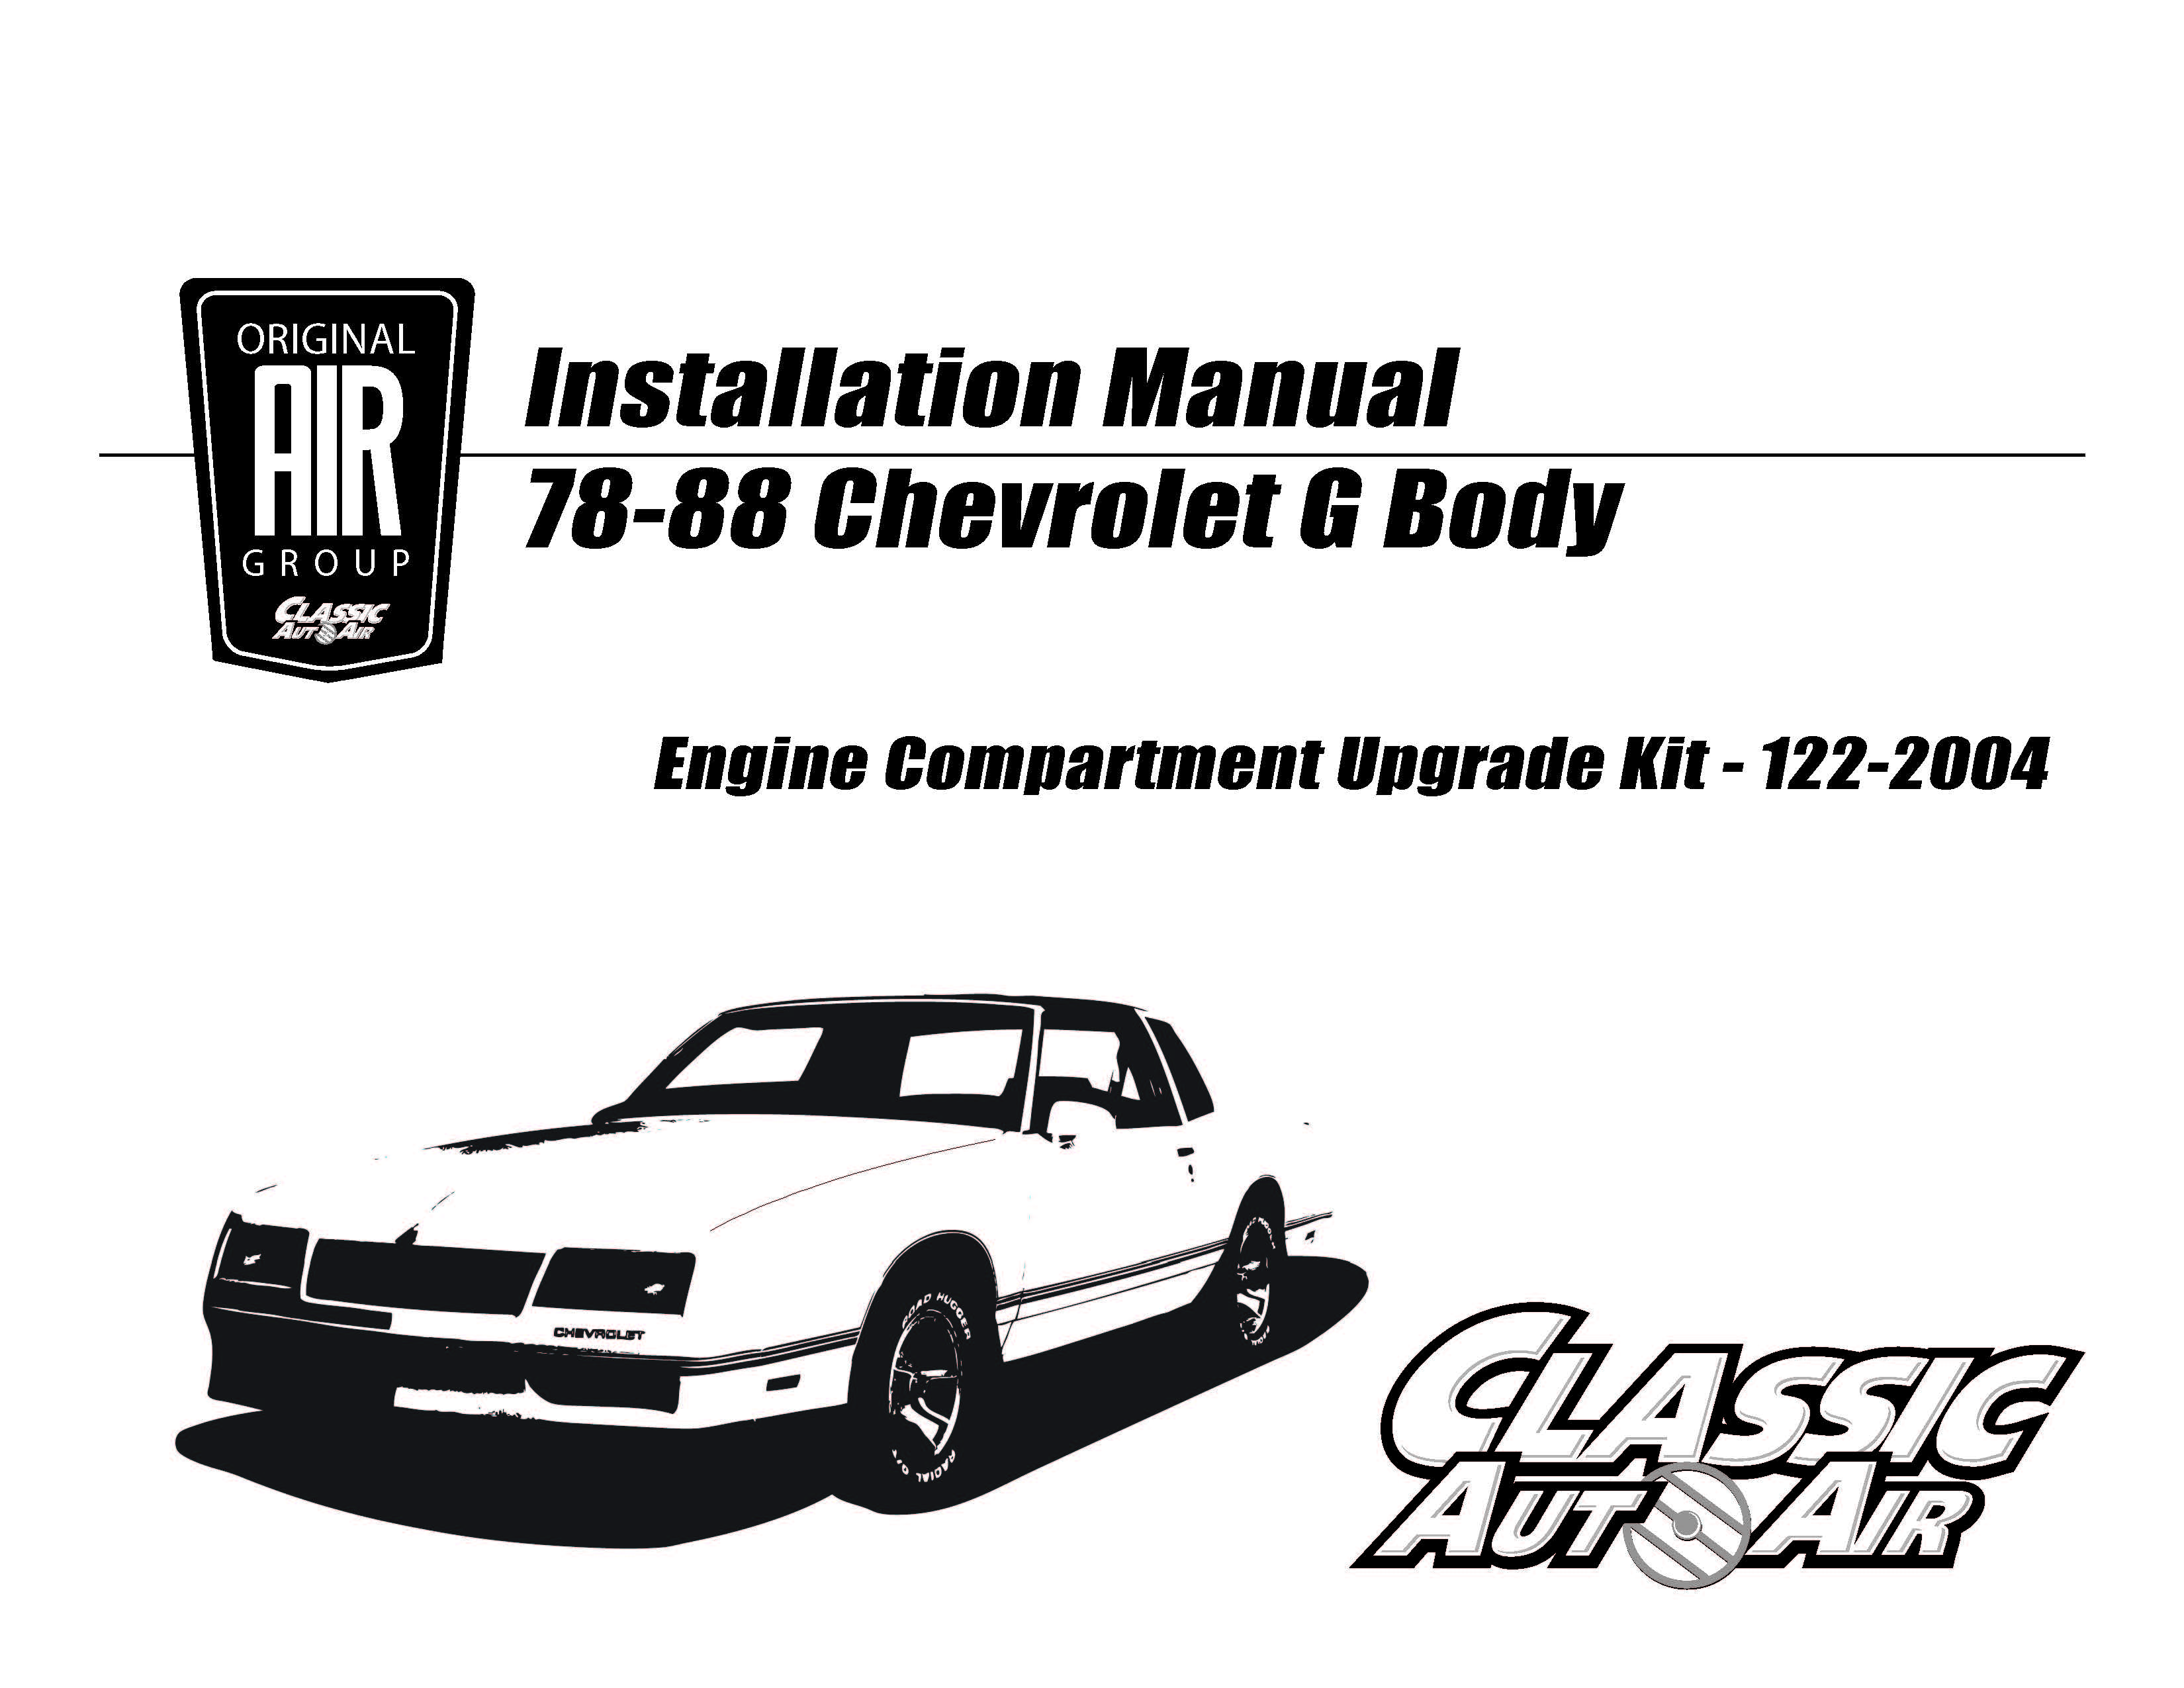 81-88 GM A & G-Body A/C Performance Upgrade Kit w/CHEVY V8